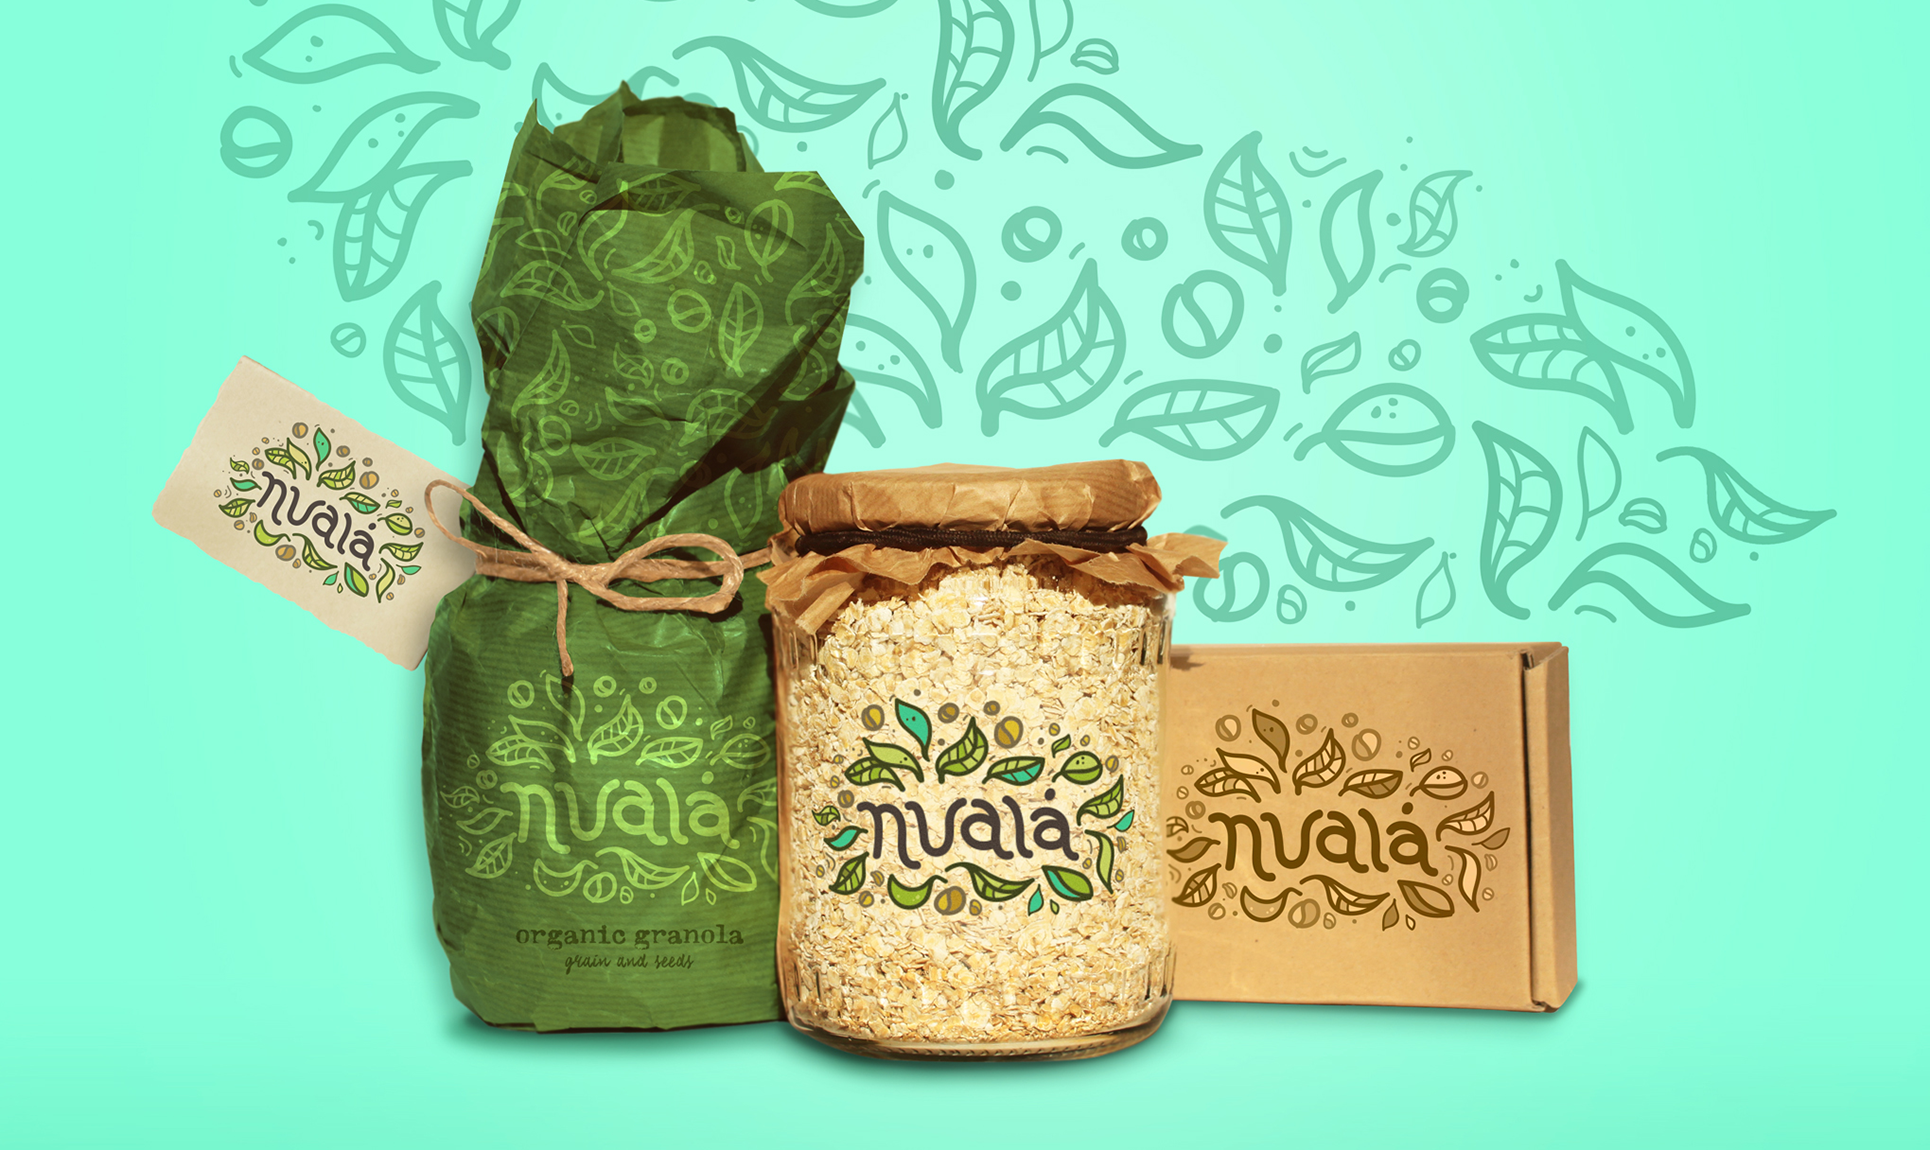 Nuala bag and jar product packaging